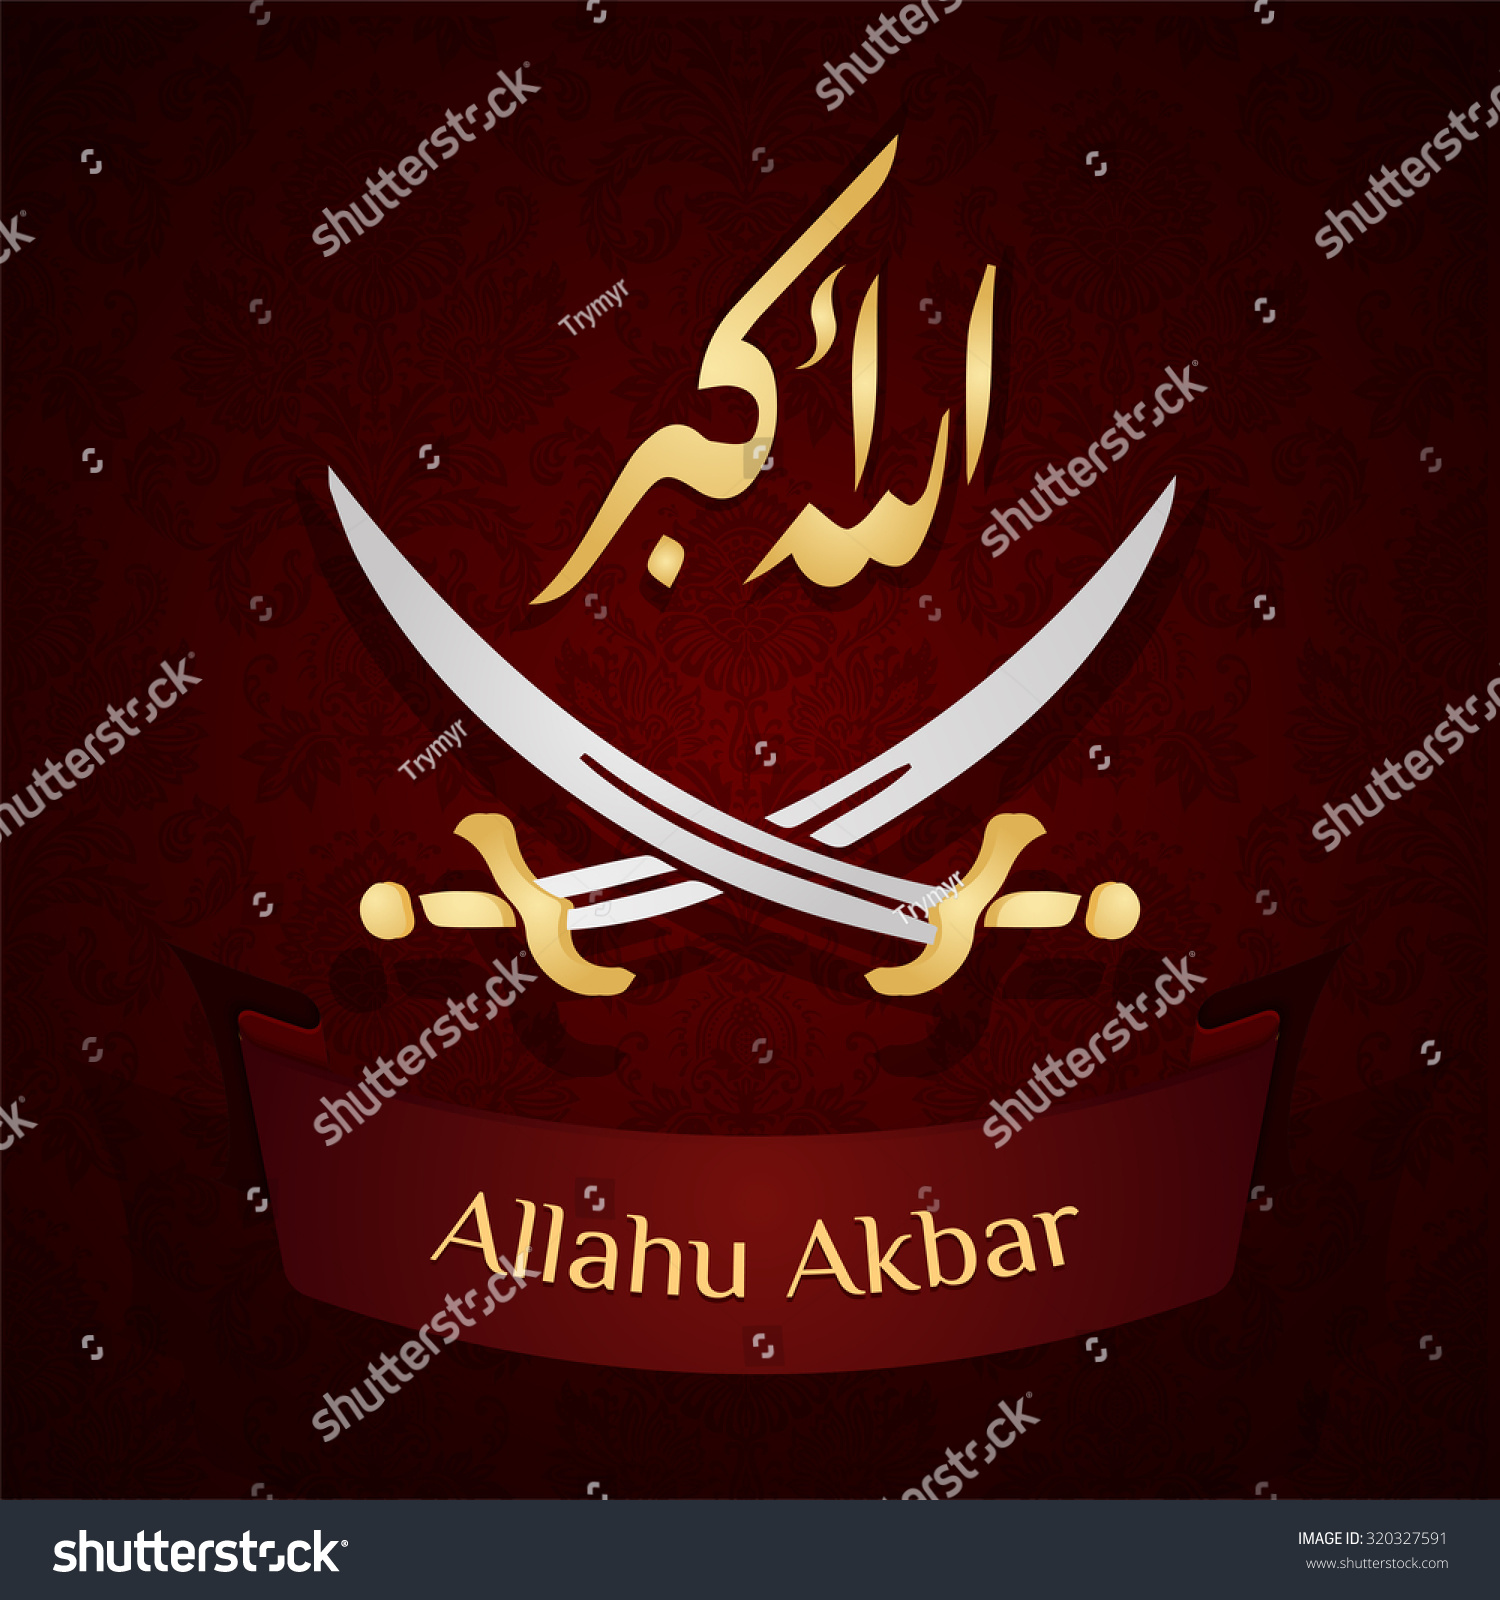 vector illustration allahu akbar arabic calligraphy stock vector